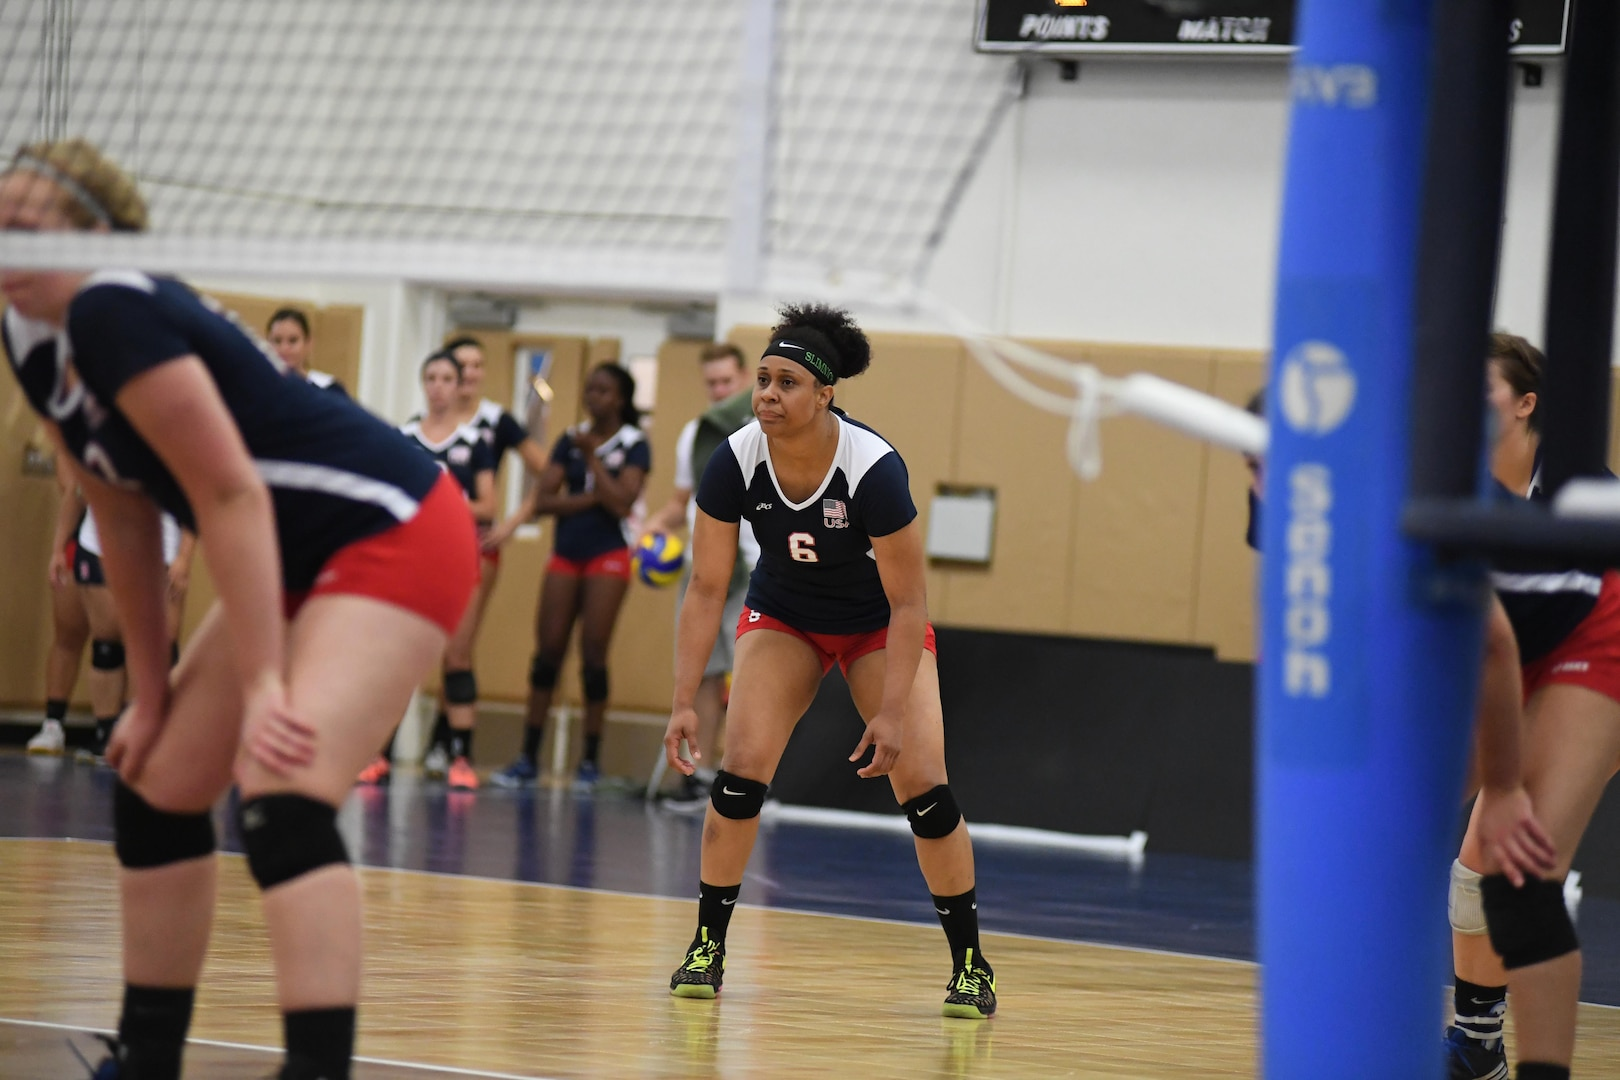 Army Sgt. Latoya Marshall (#6) led the U.S. over Canada wtih 20 points in match 4 of the 18th Conseil International du Sport Militaire (CISM) World Women's Military Volleyball Championship at Naval Station Mayport, Florida on 5 June 2017. Mayport is hosting the CISM Championship from 2-11 June.  Finals are on 9 June.